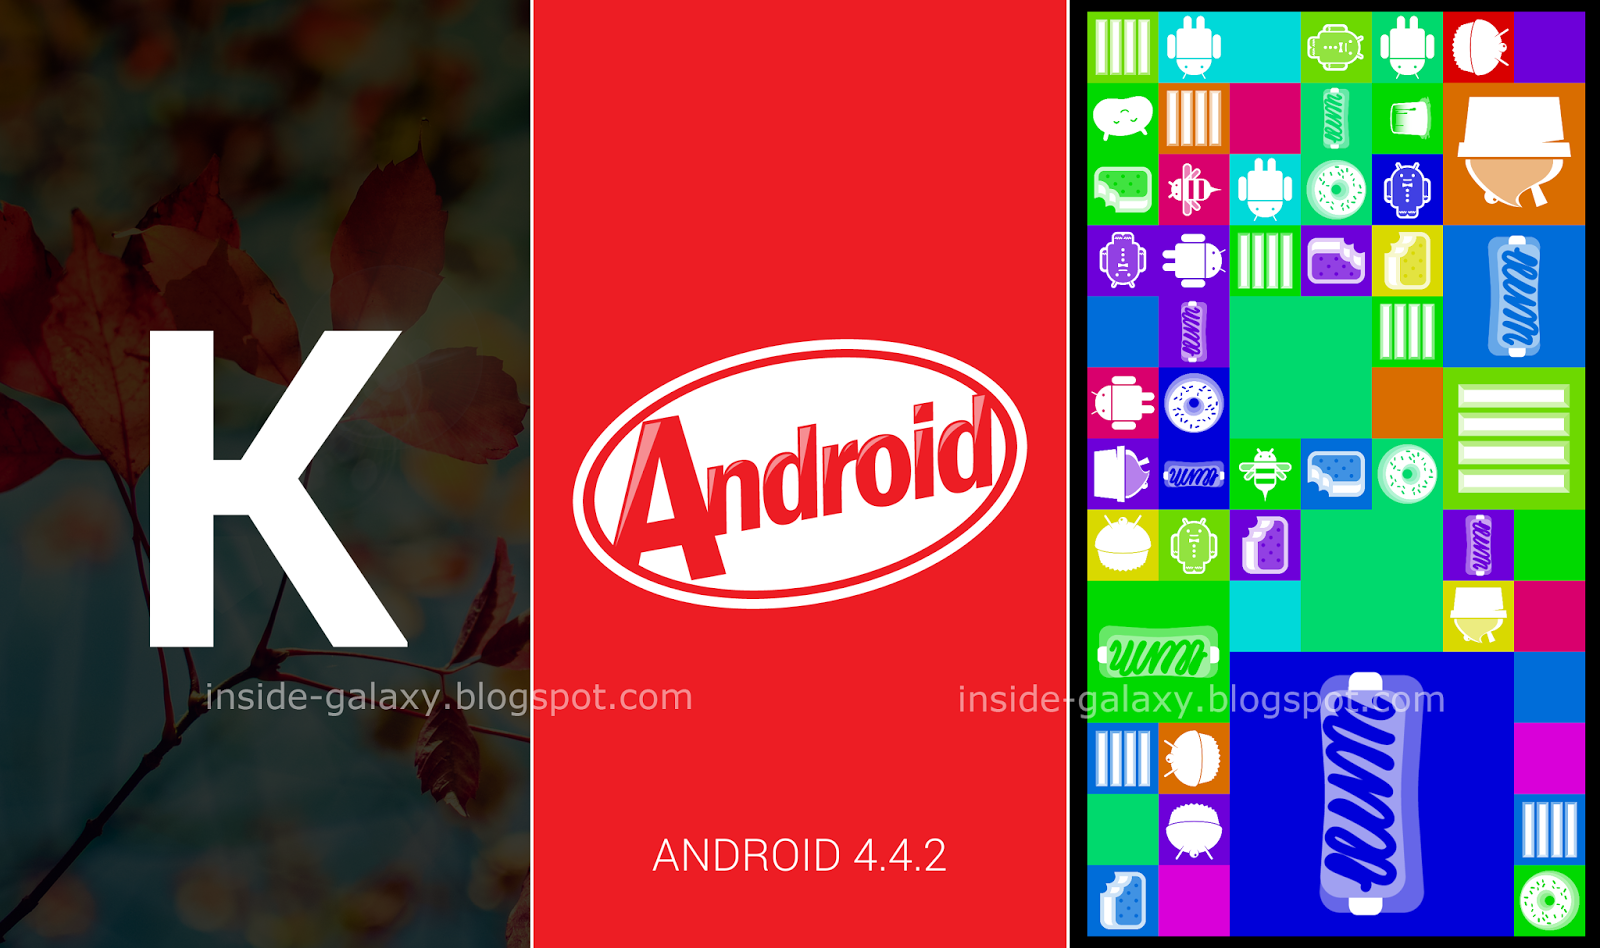 Android 4.4 Kitkat easter egg animation in Galaxy S4